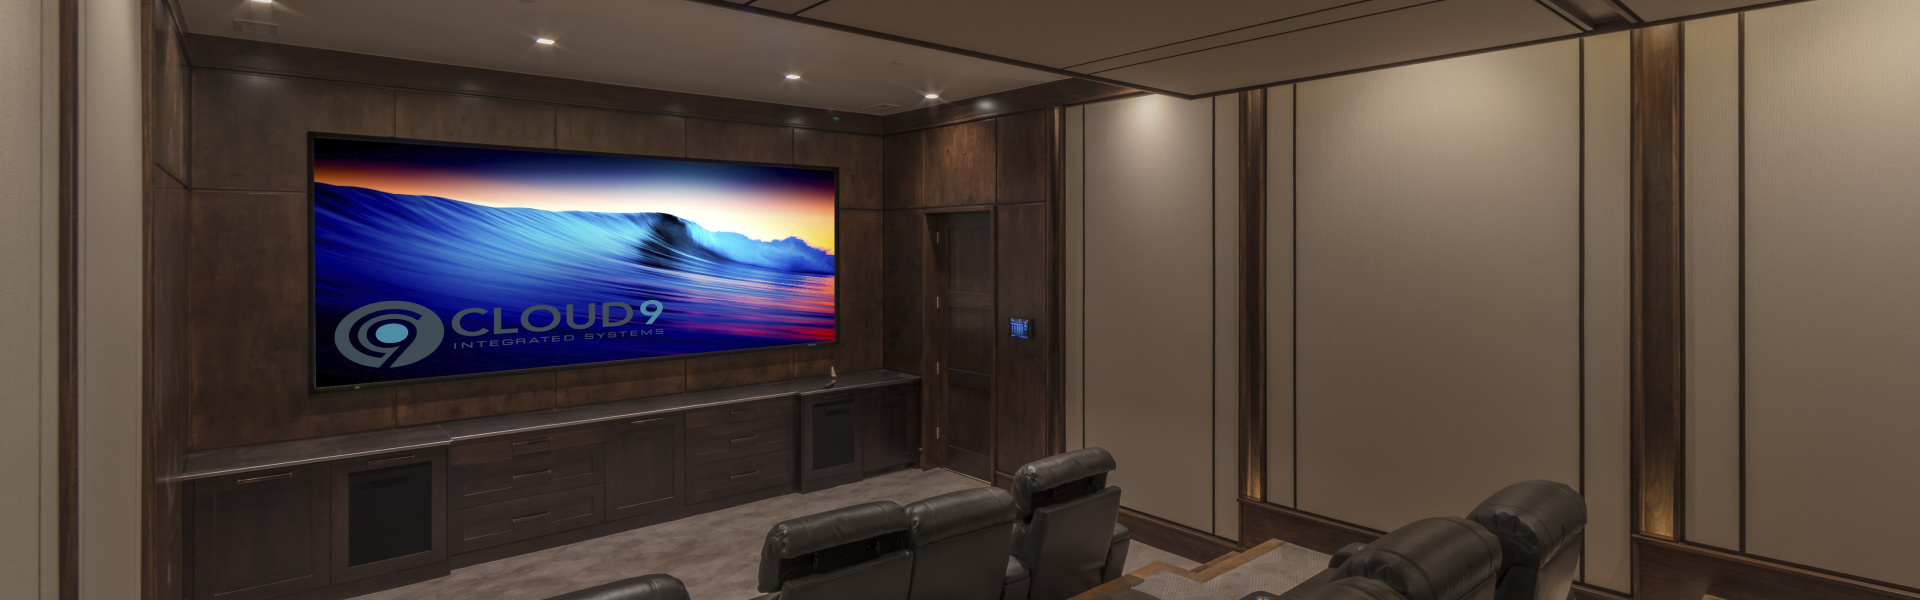 Smart home installation by Cloud 9 Integrated Systems for Vail